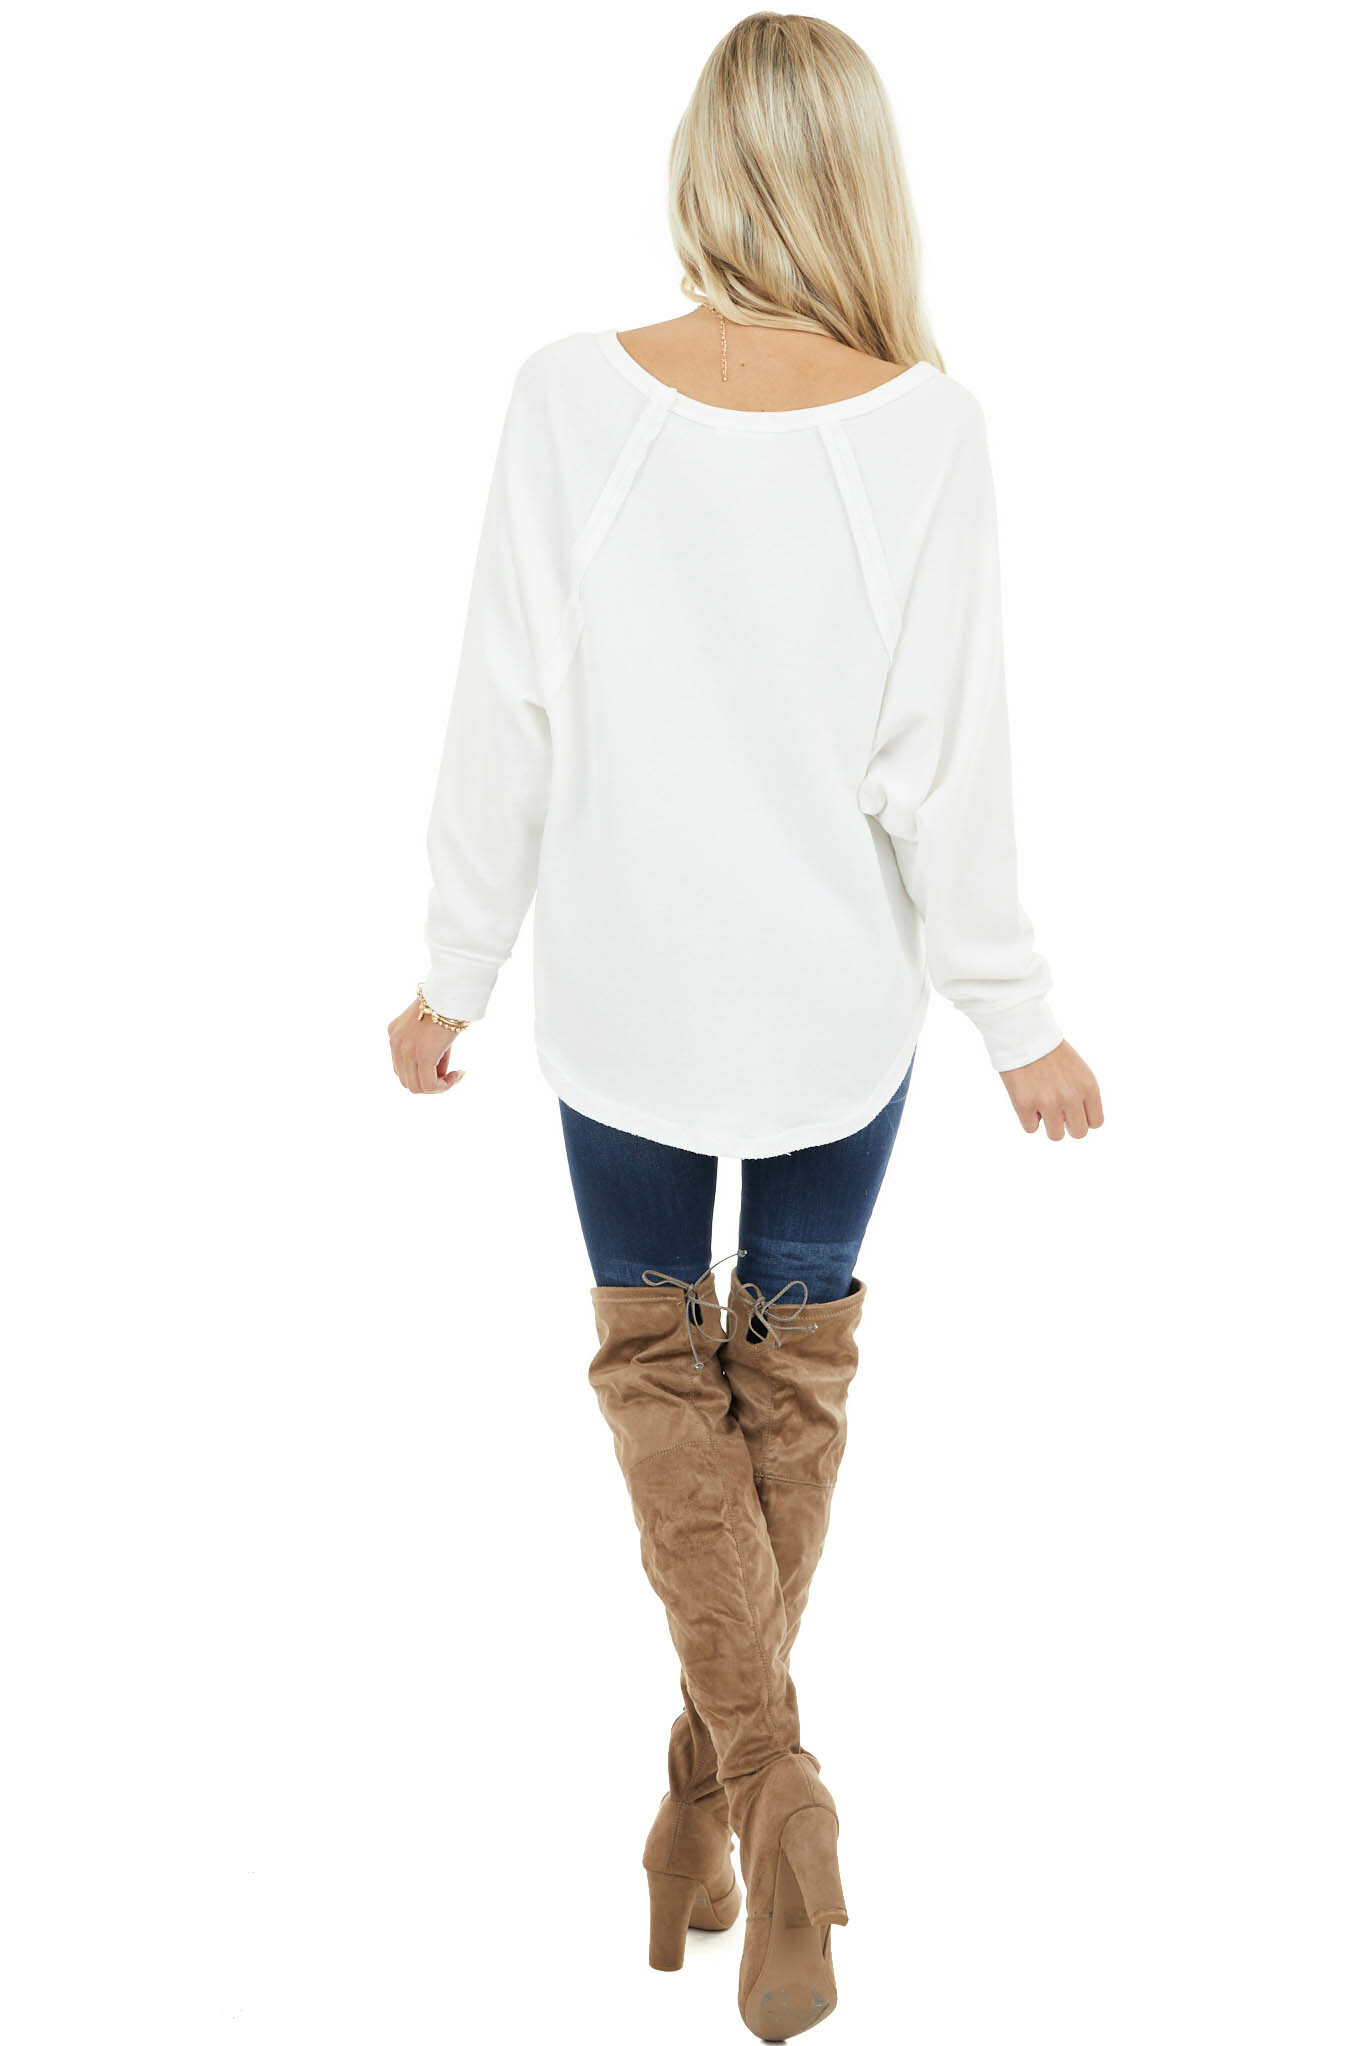 Ivory Bat Wing Knit Top with Raw Reverse Stitch Details